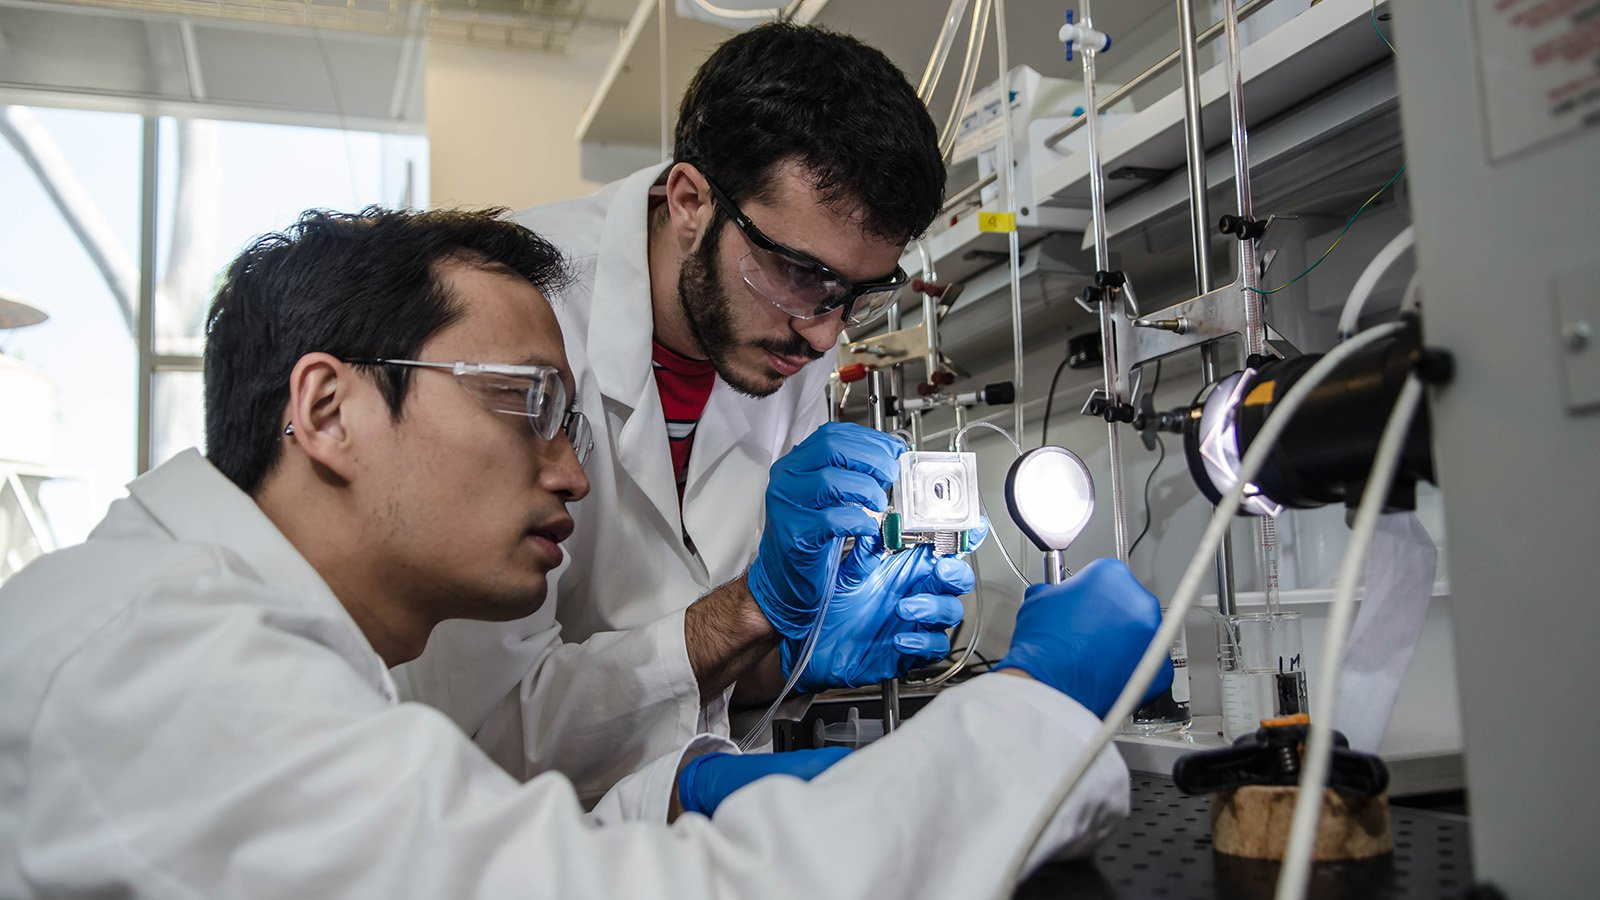 Caltech students in lab